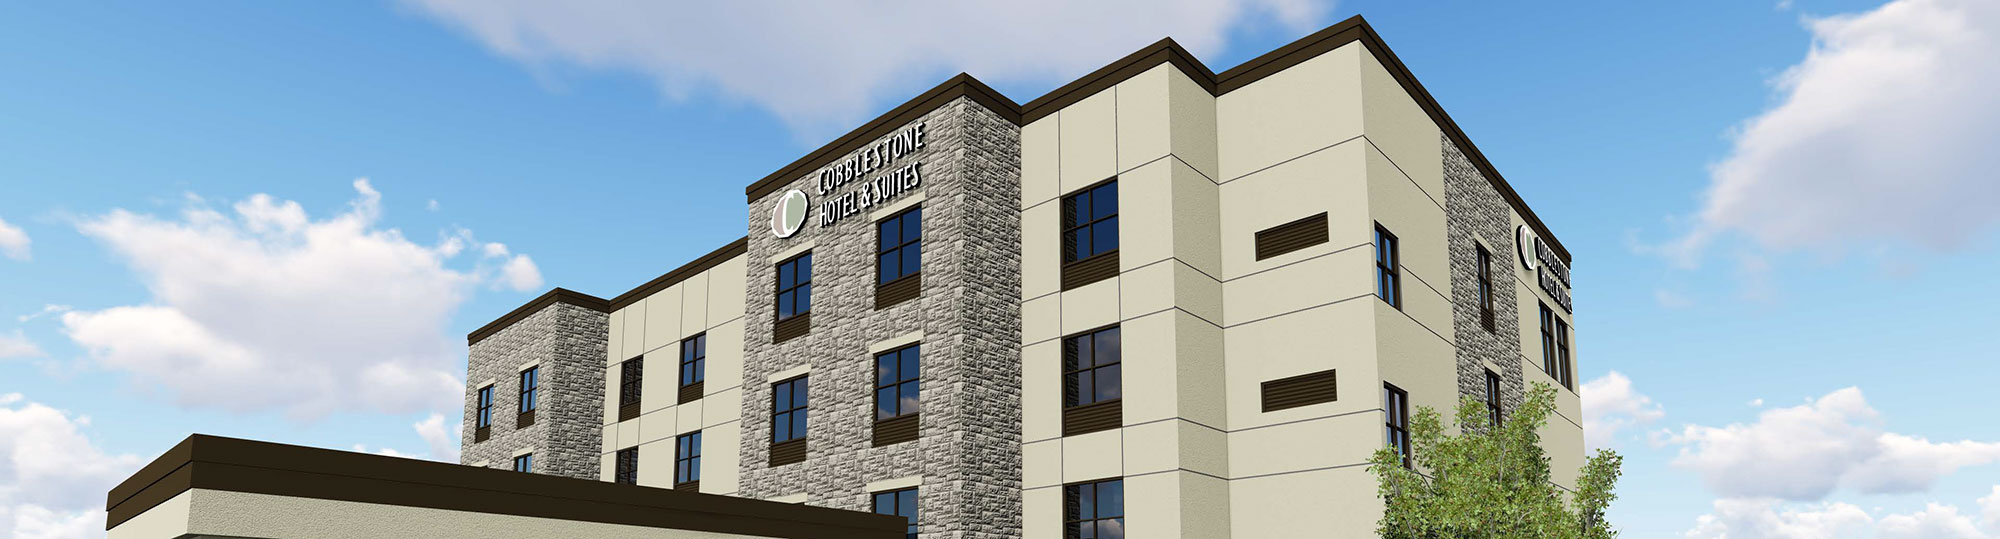 Cobblestone Hotel and Suites Two Rivers